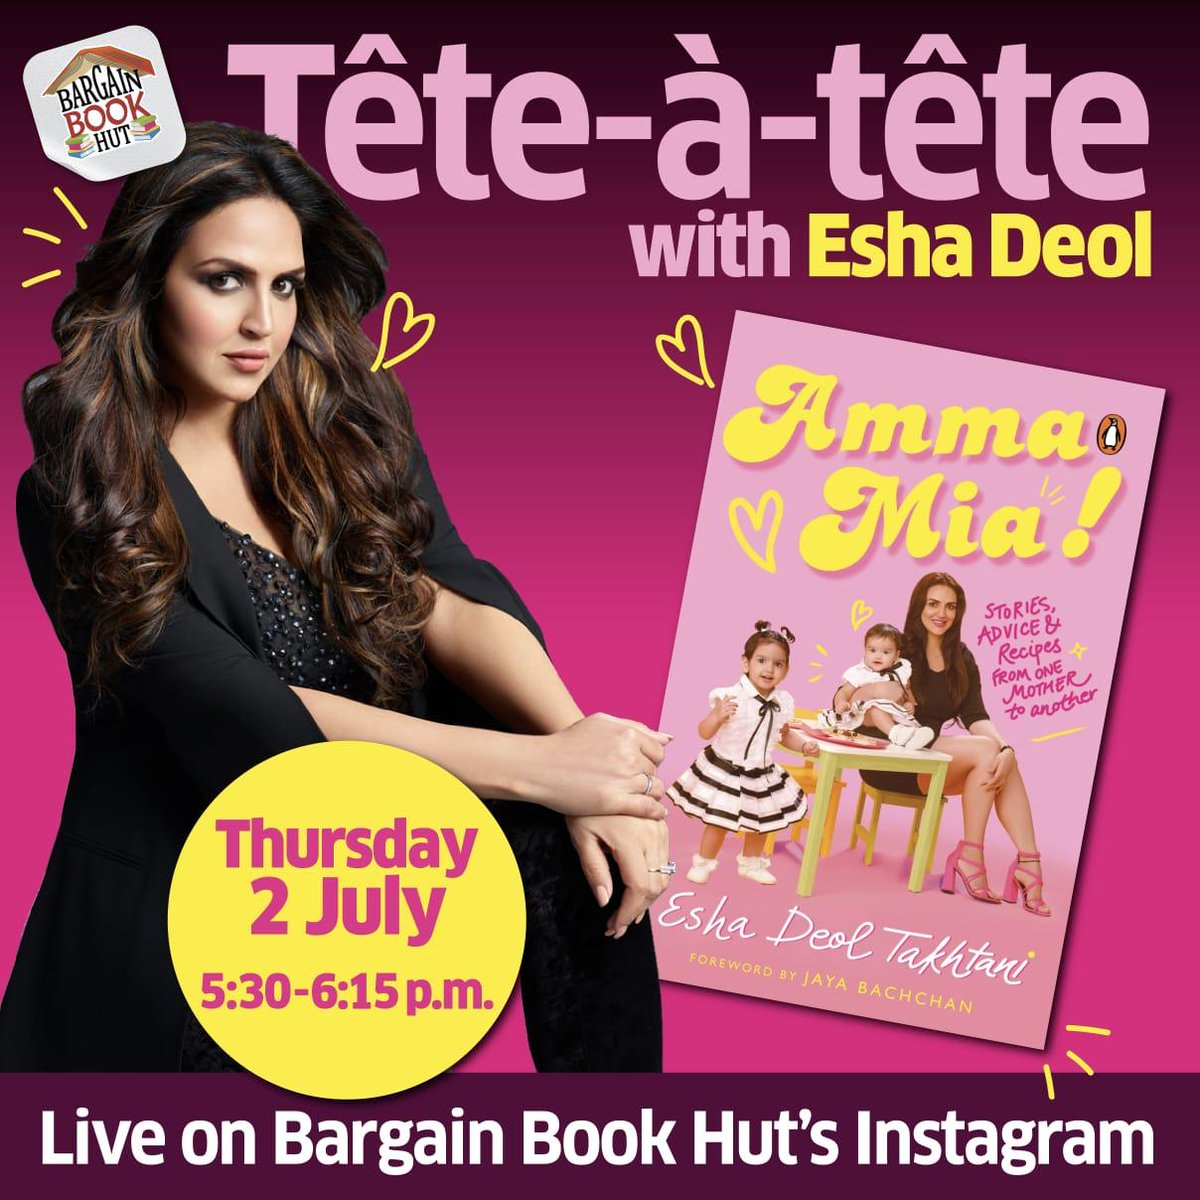 No matter how prepared you are, raising a toddler can be one hell of a ride! Tune in on Thursday, 2nd July, as @BargainBookHut speaks to @Esha_Deol on her adventures of motherhood, and the importance of food while raising two happy and healthy daughters #VivianaCares #VivianaMall https://t.co/U2aCyCJvua